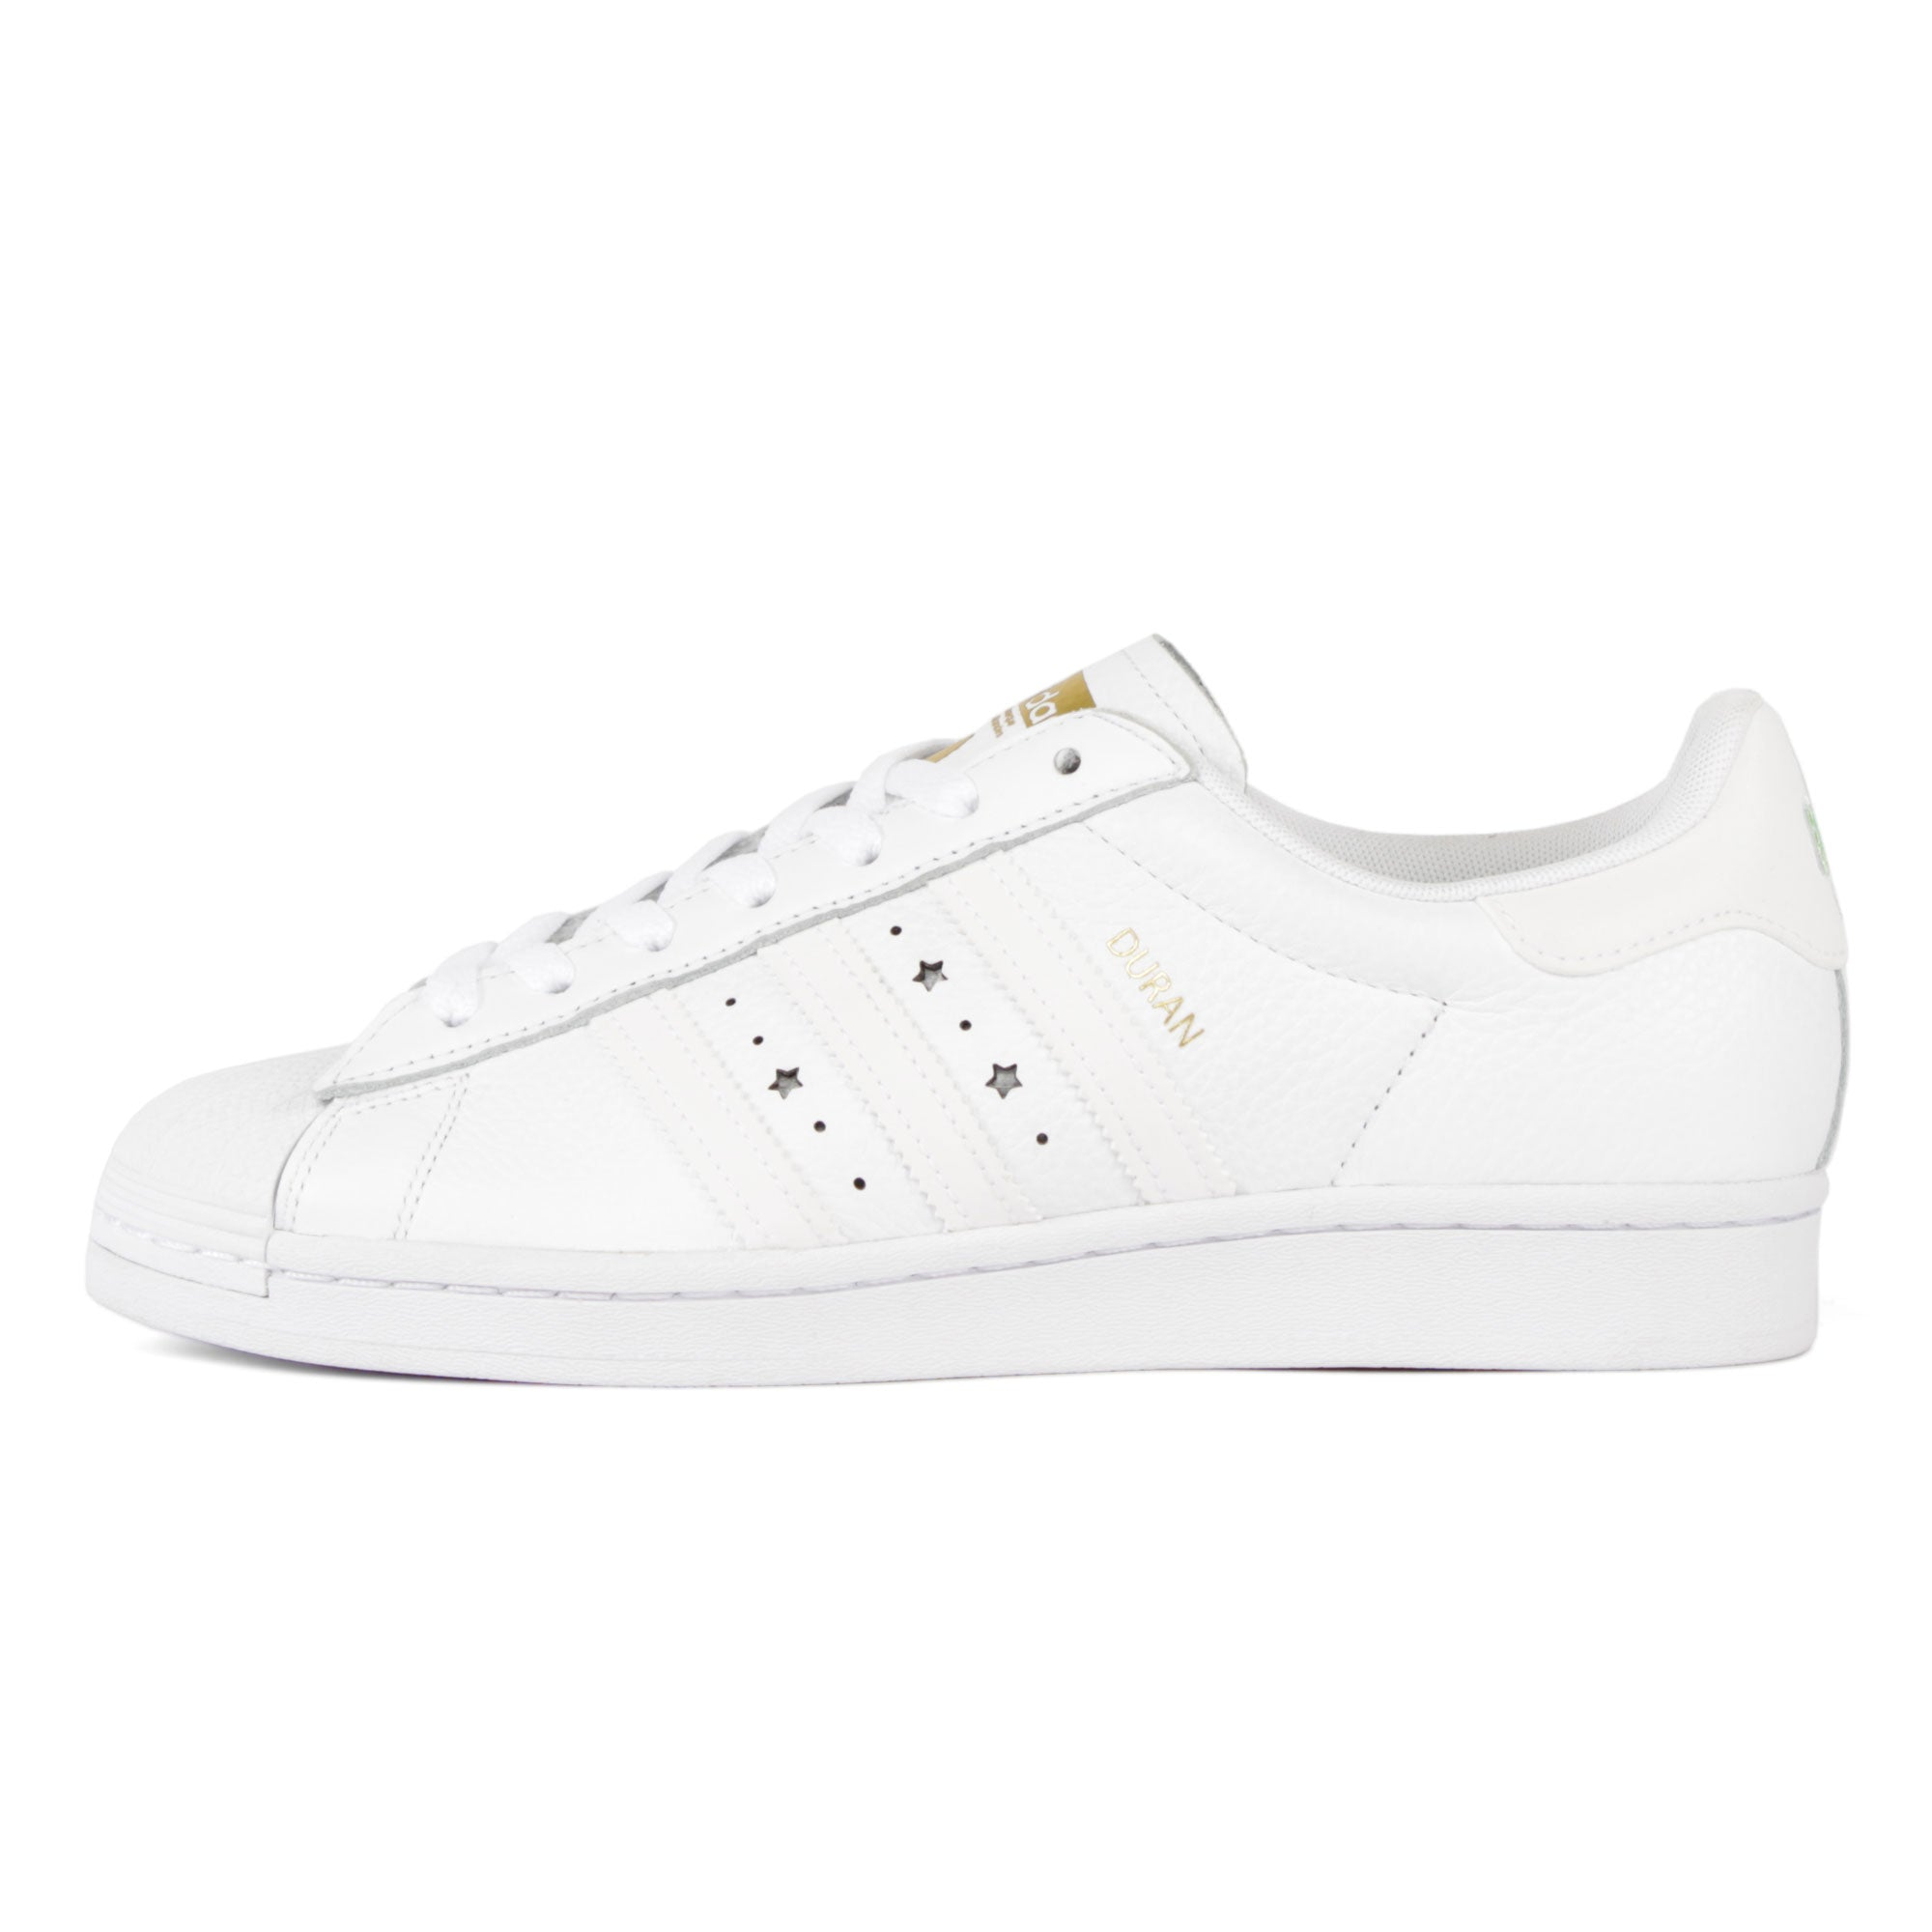 Adidas Superstar ADV x Duran Product Photo #1